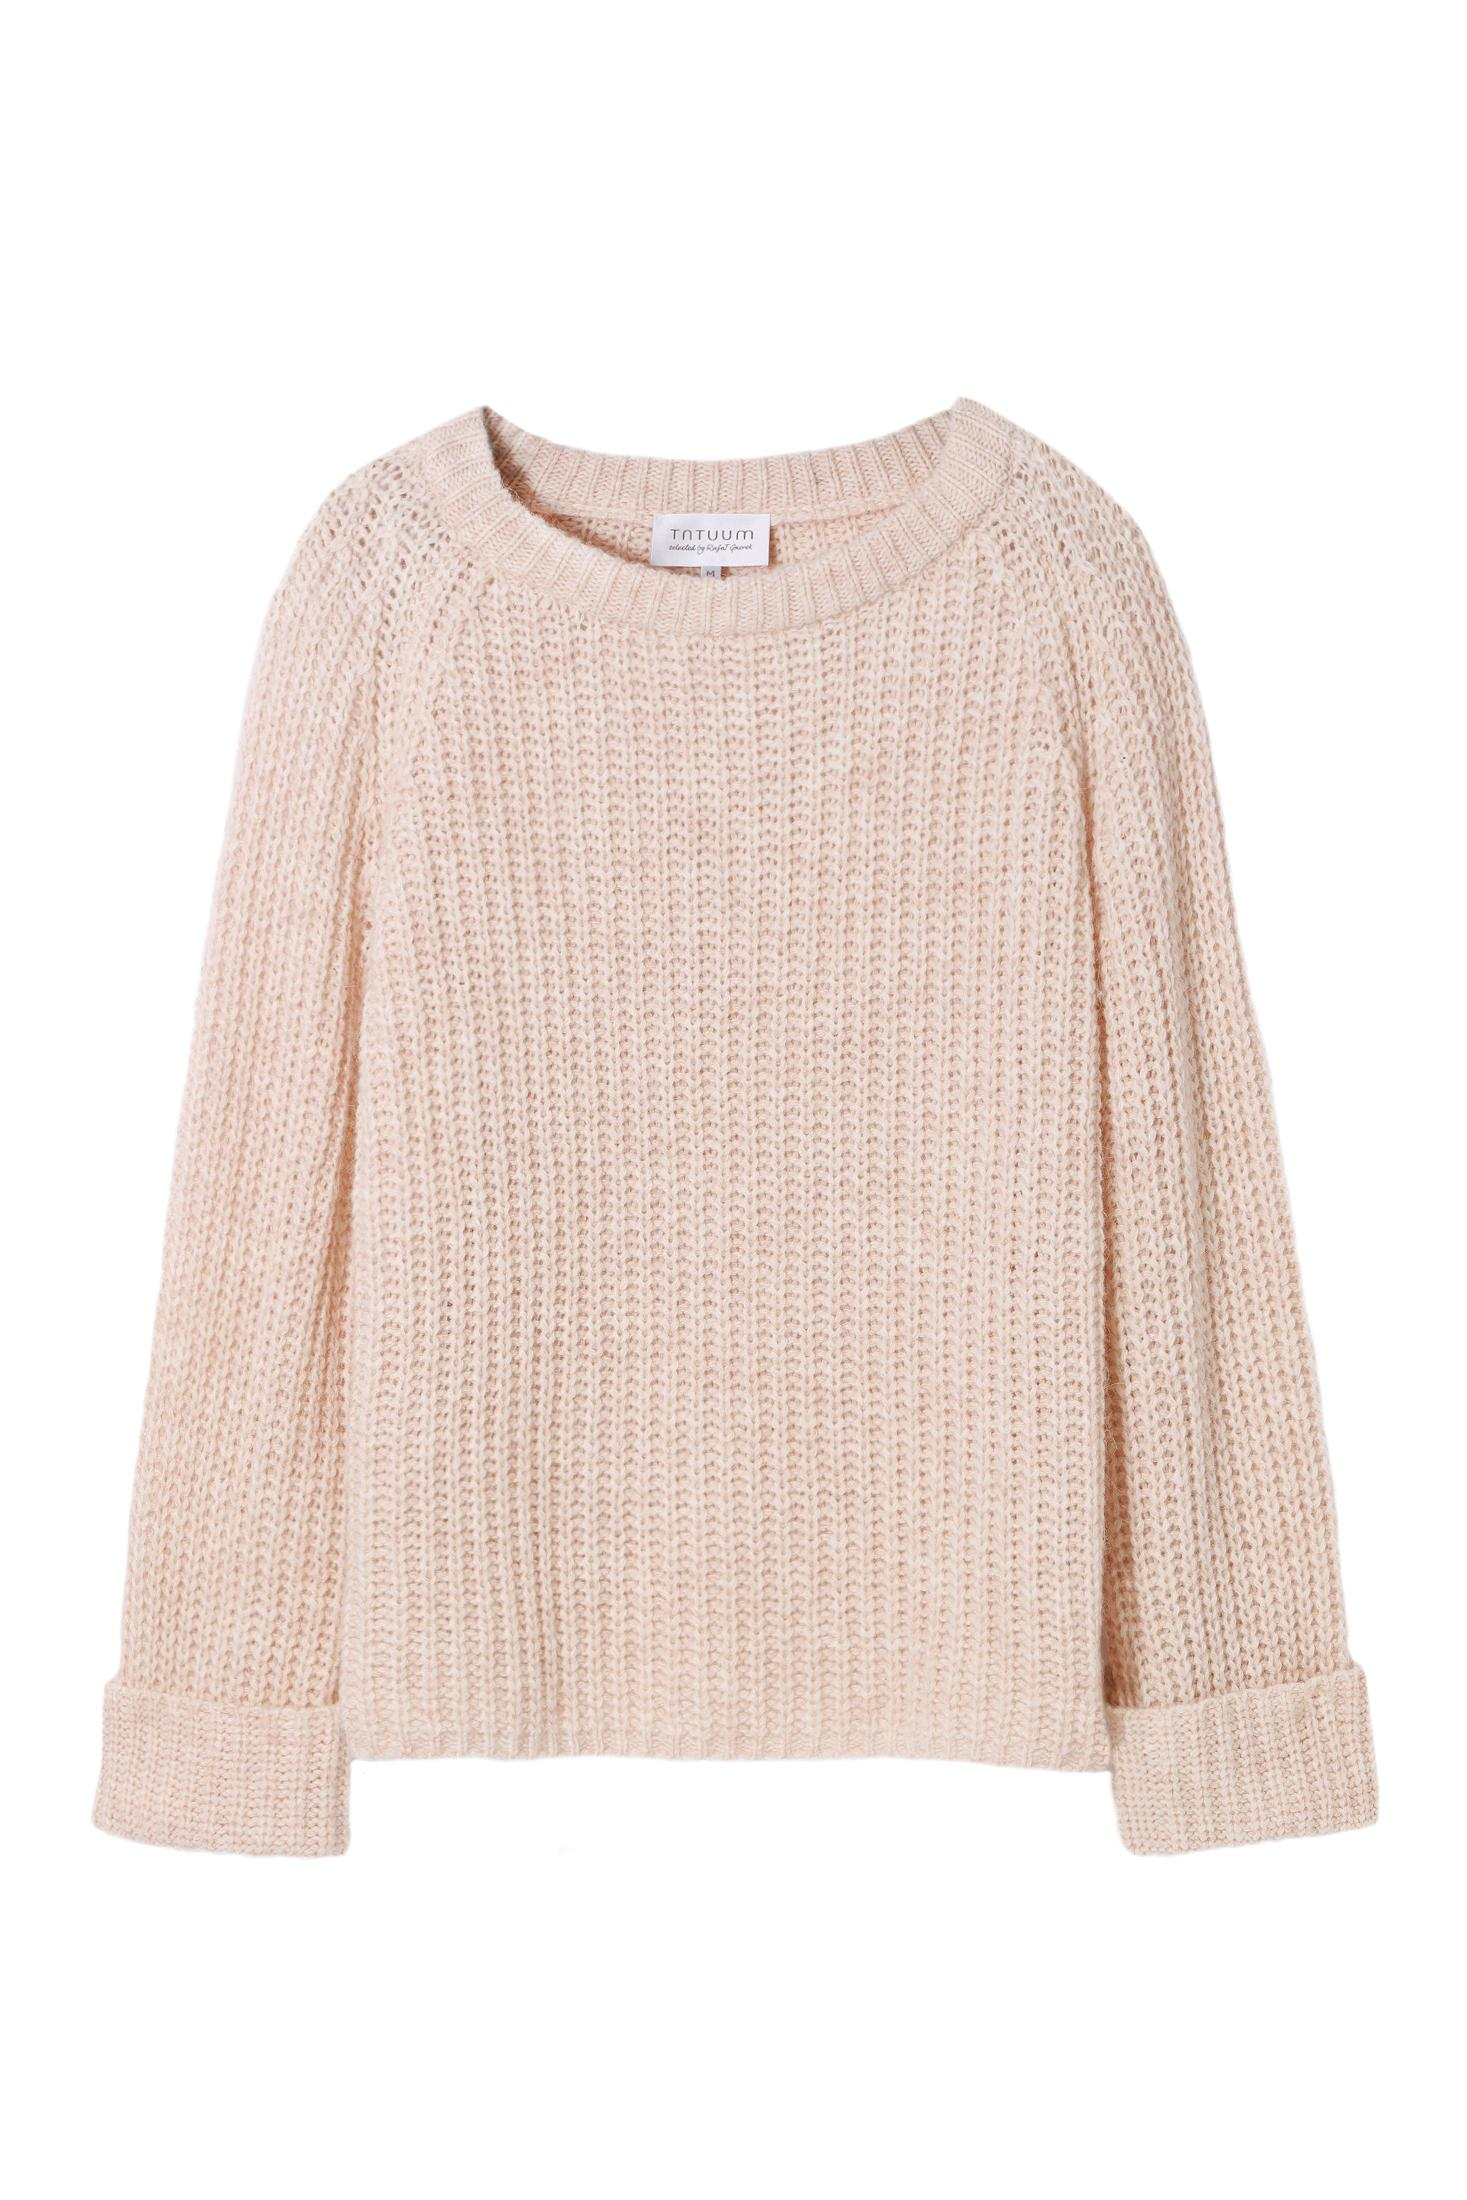 PASTEL COLOR SOFT SWEATER - SELECTED PERLA